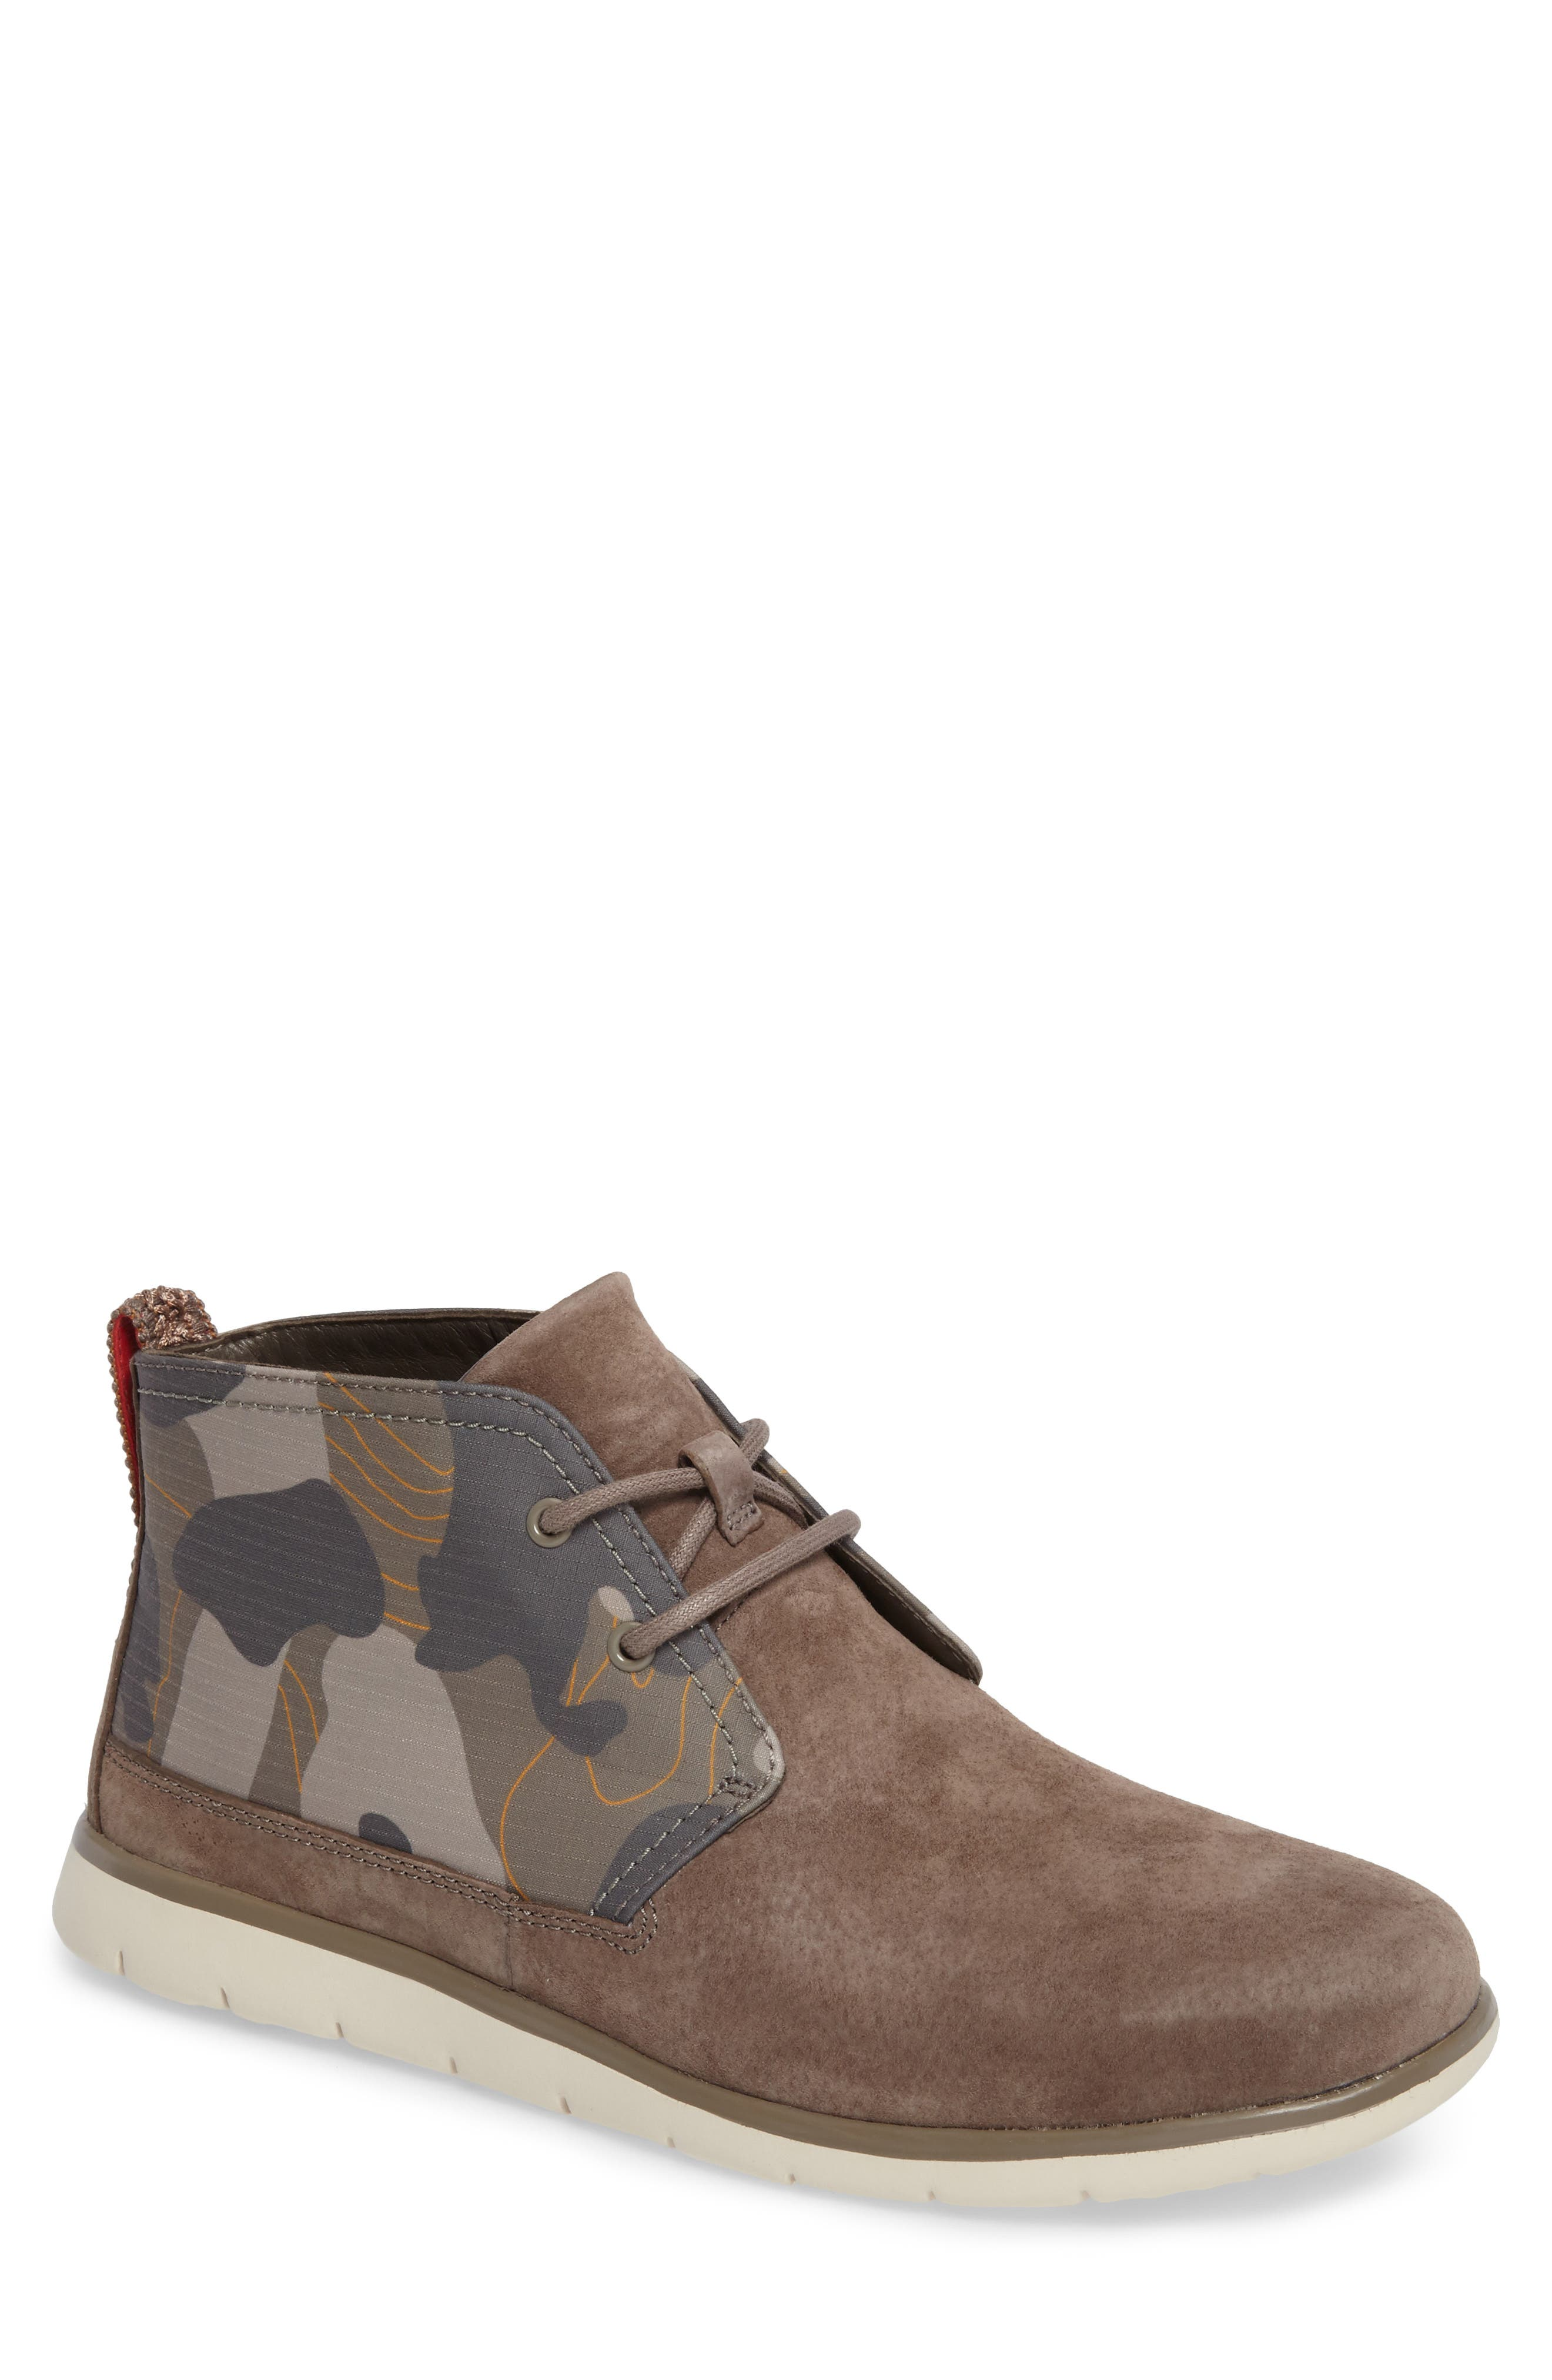 Freamon Chukka Boot,                         Main,                         color, Brindle